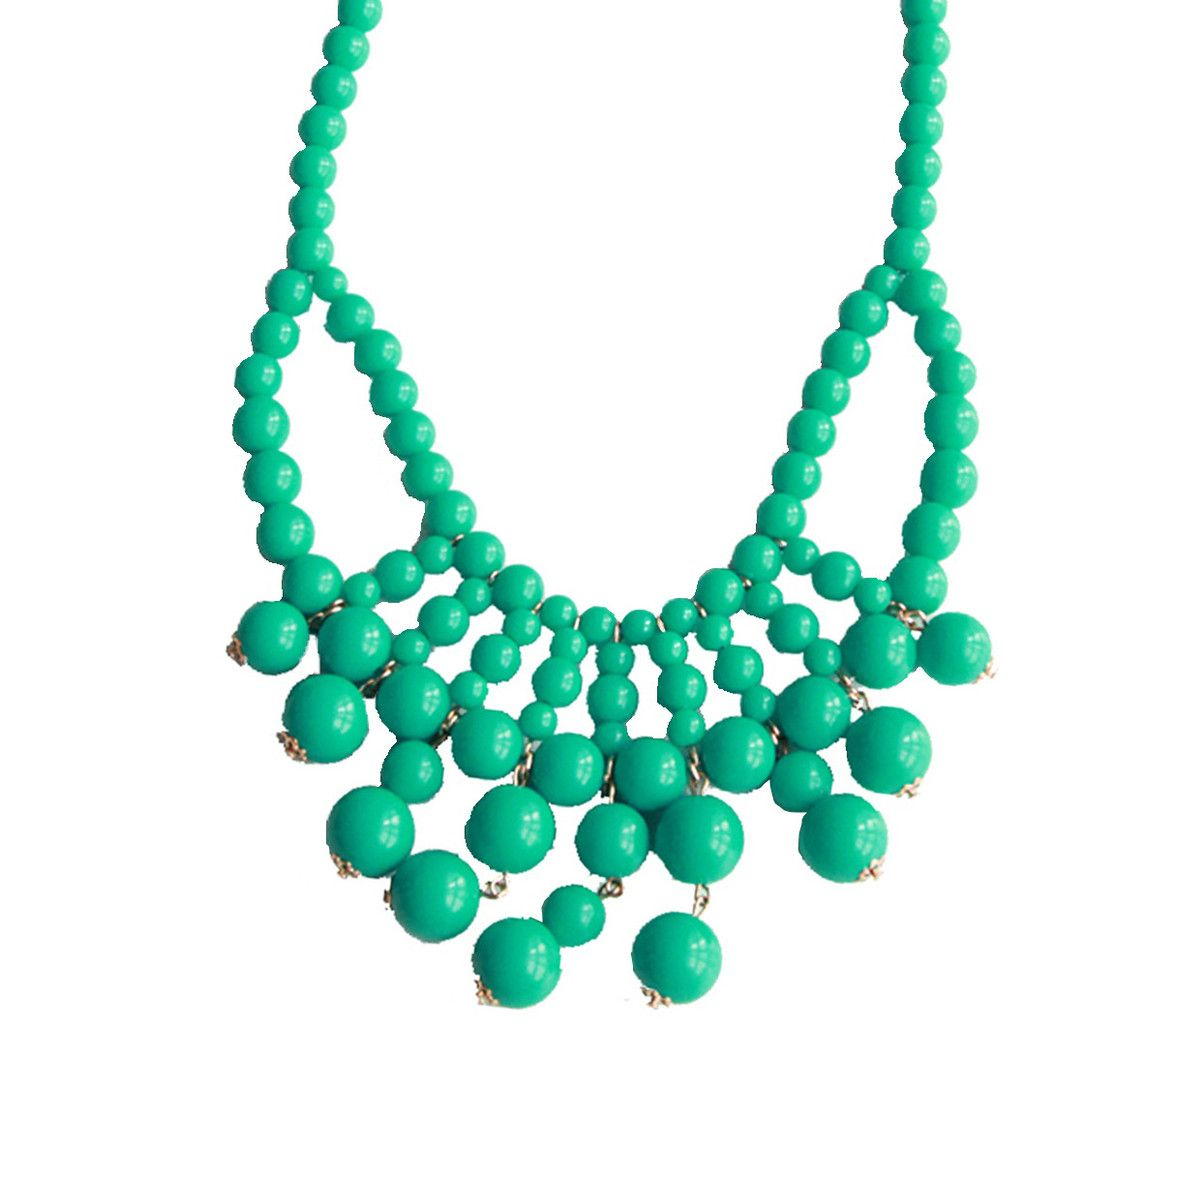 bauble beads and necklaces sersich stephanie necklace pin products